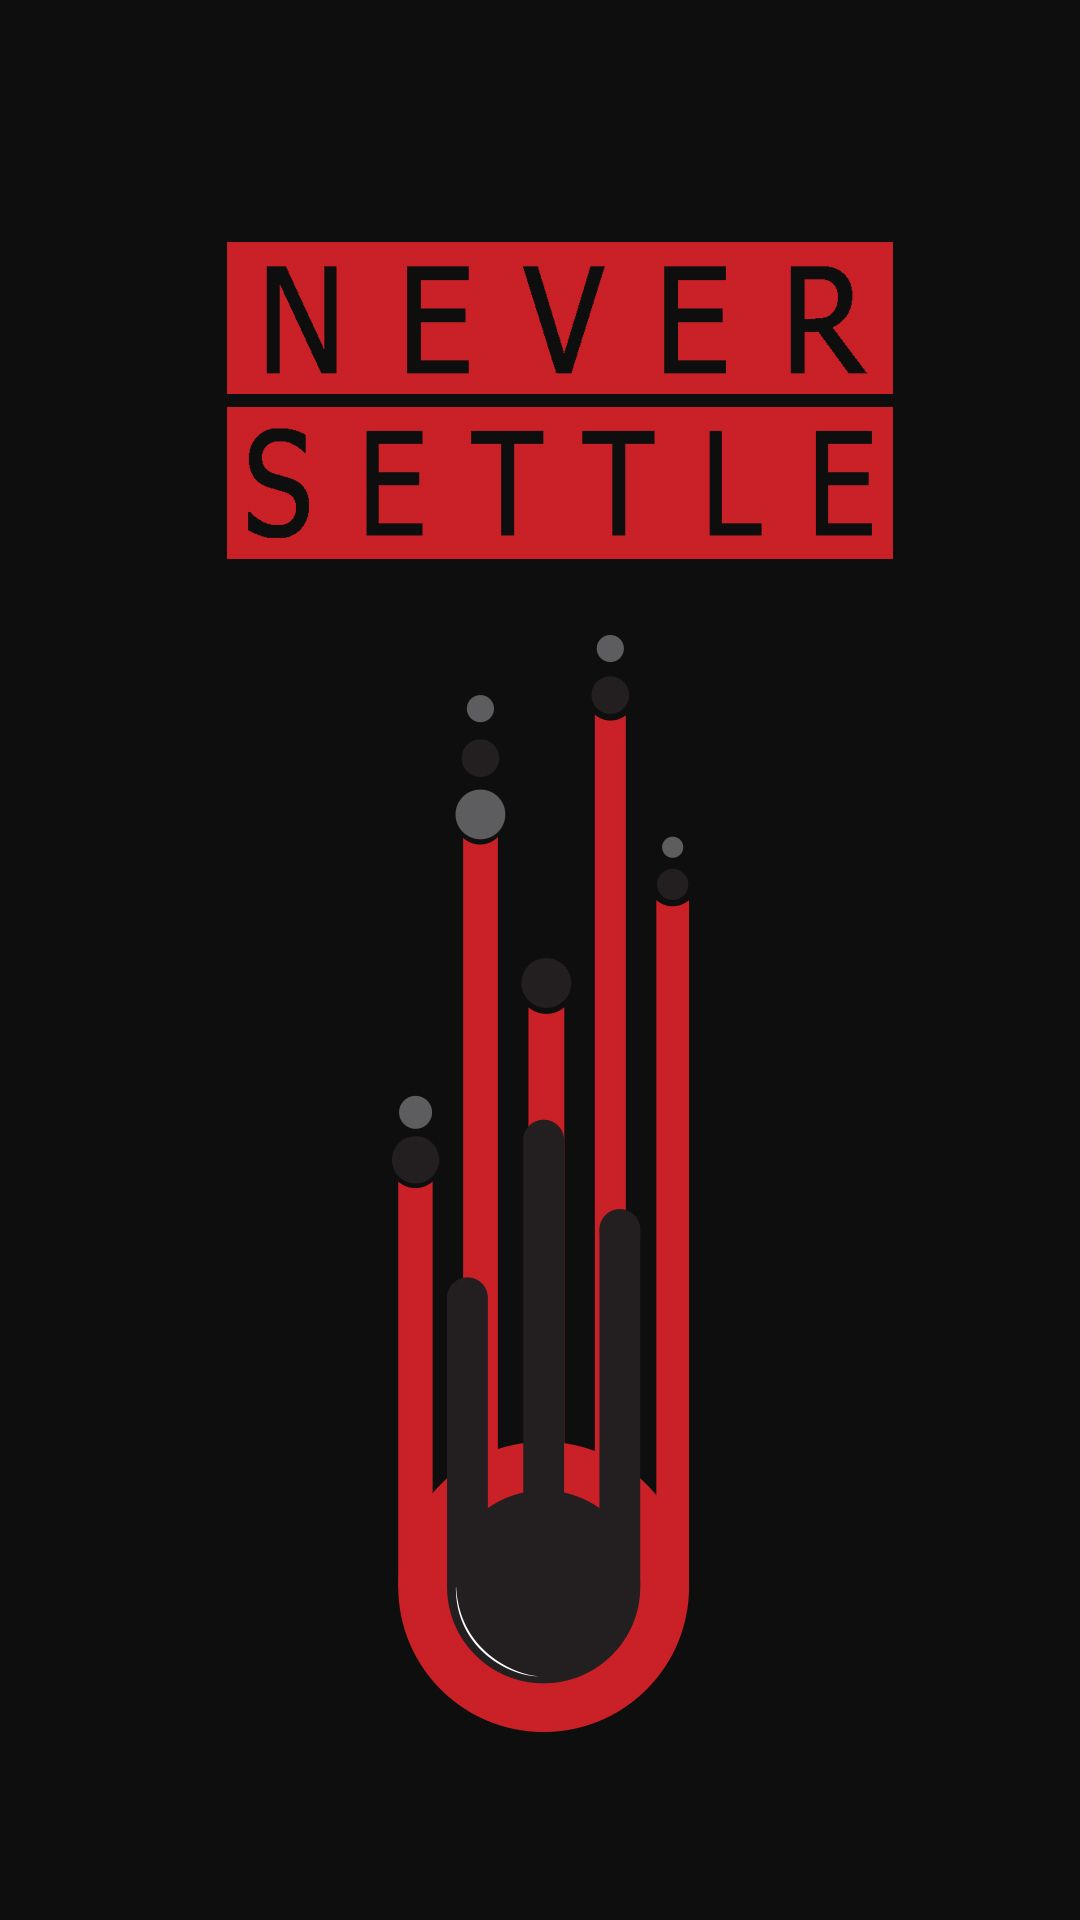 One Plus Neversettle Wallpaper Oneplus Never Settle Wallpapers